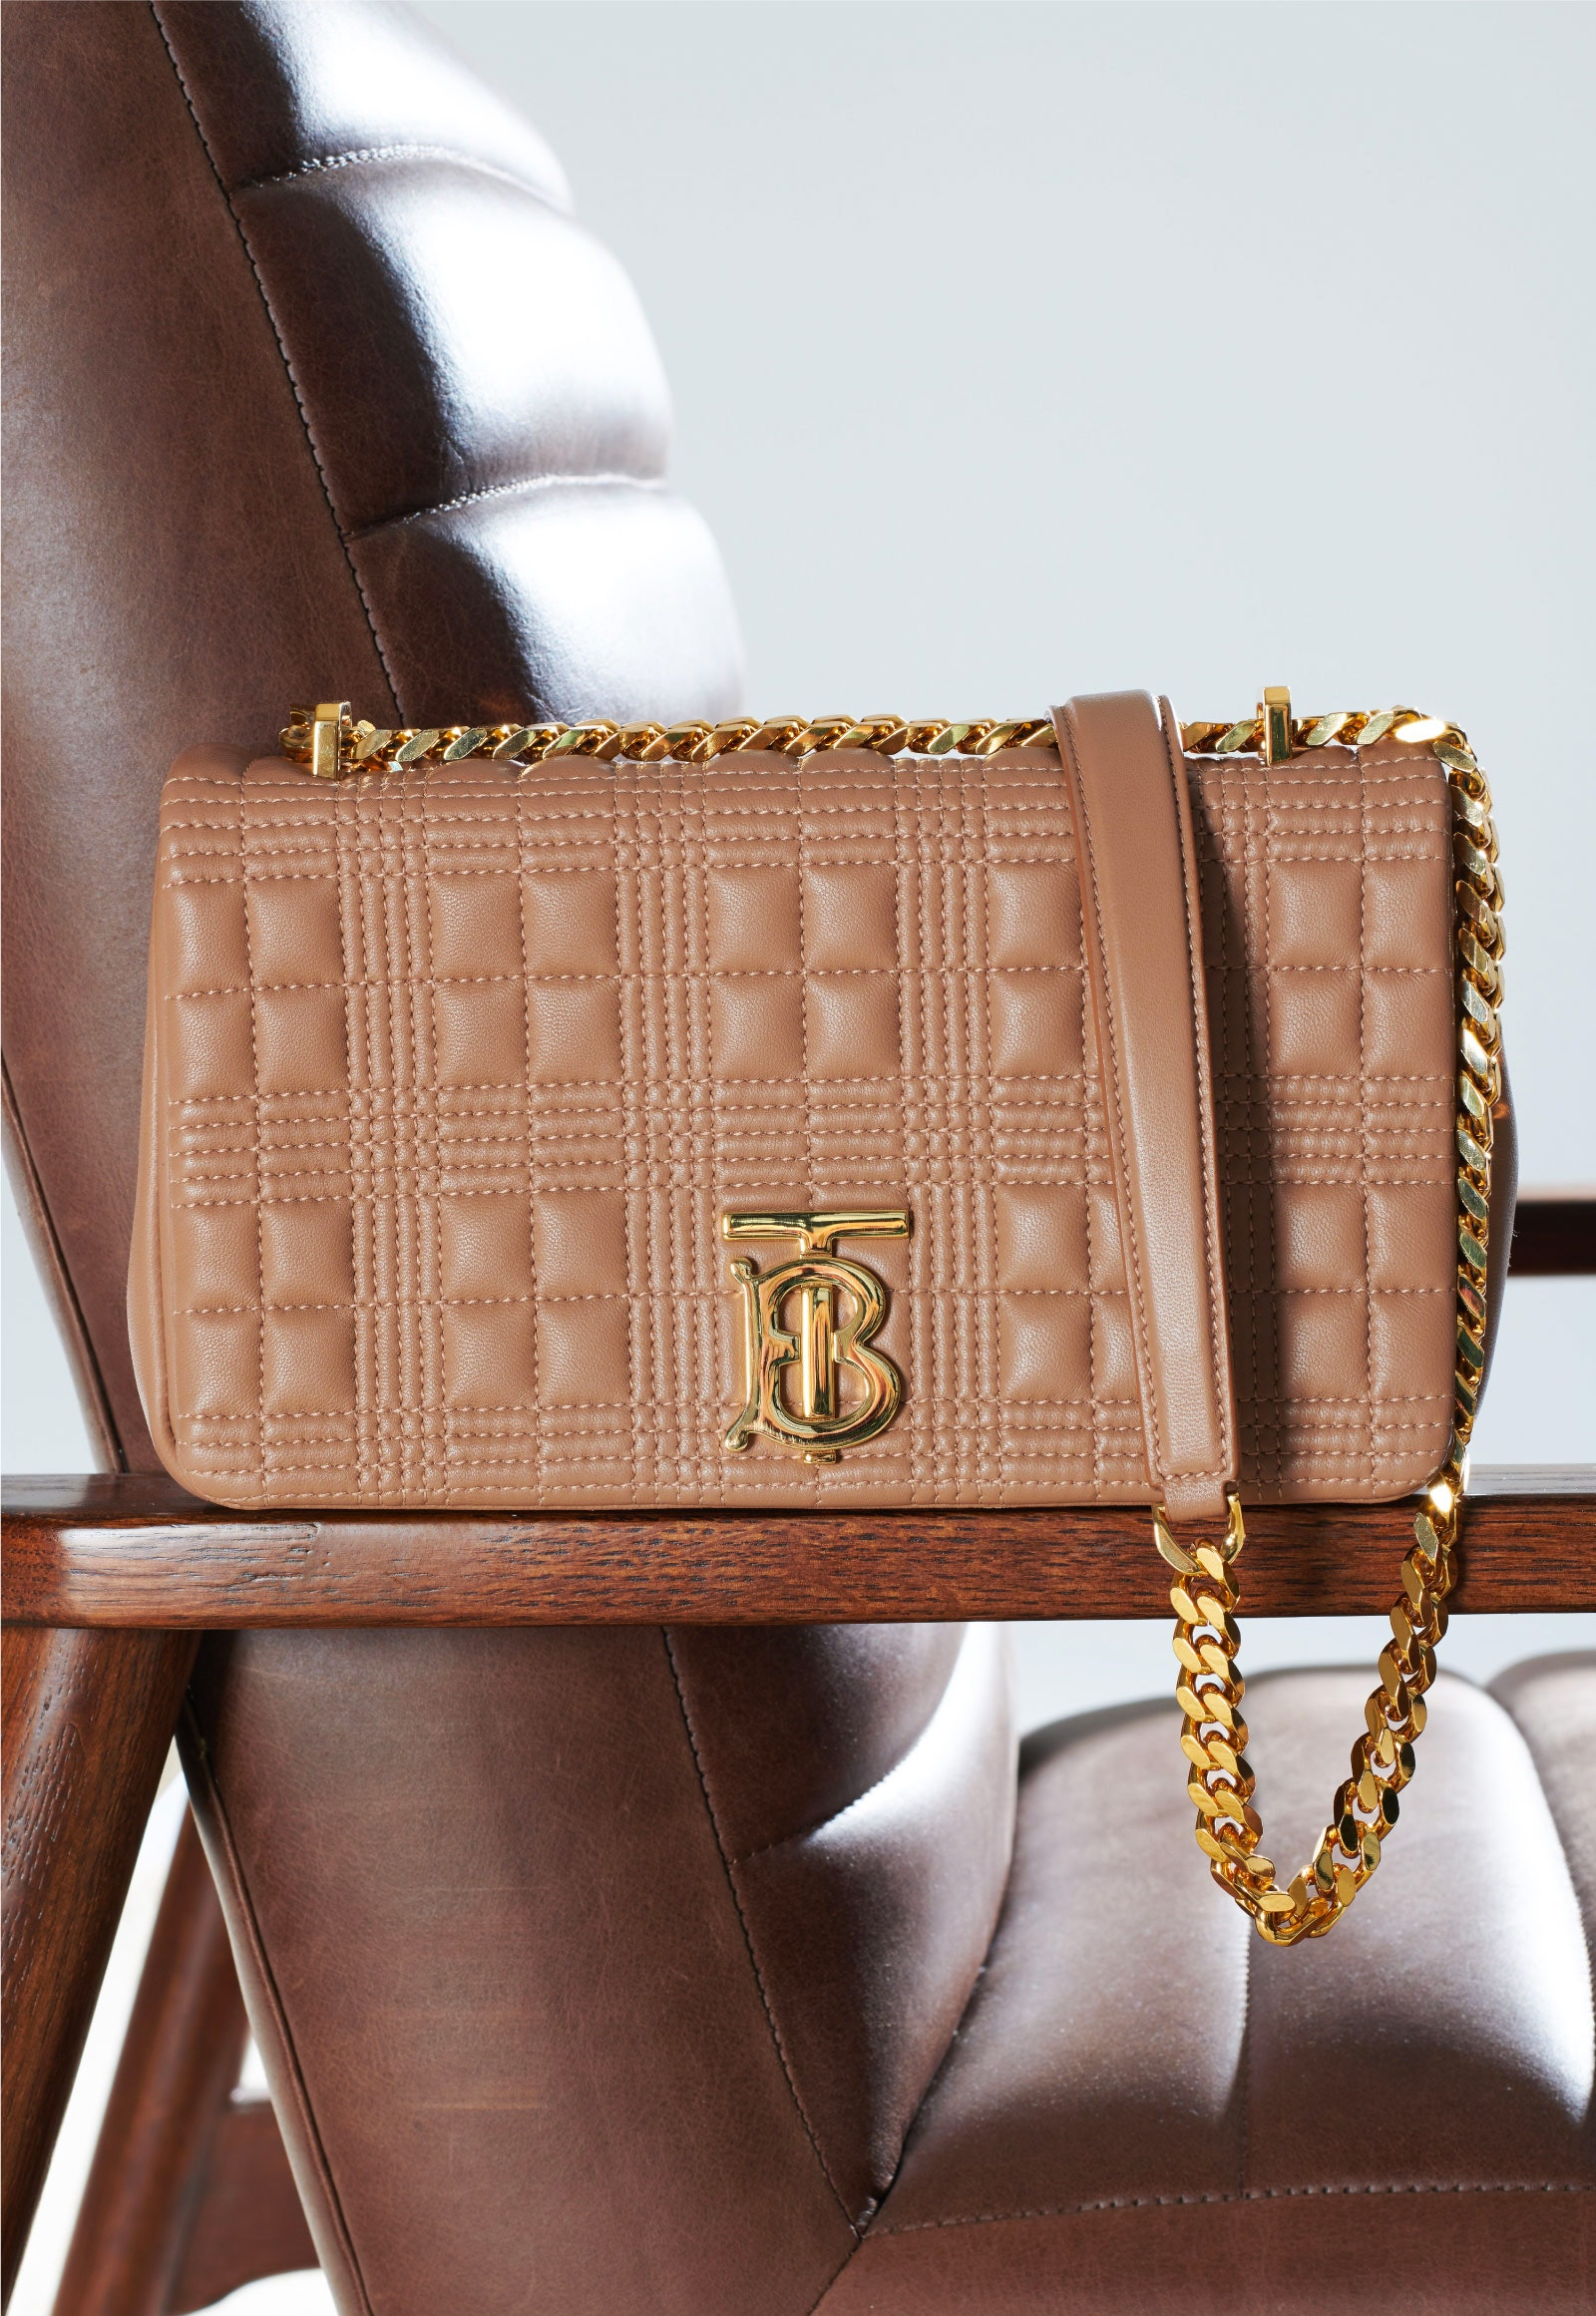 LOLA BAG IN BEIGE